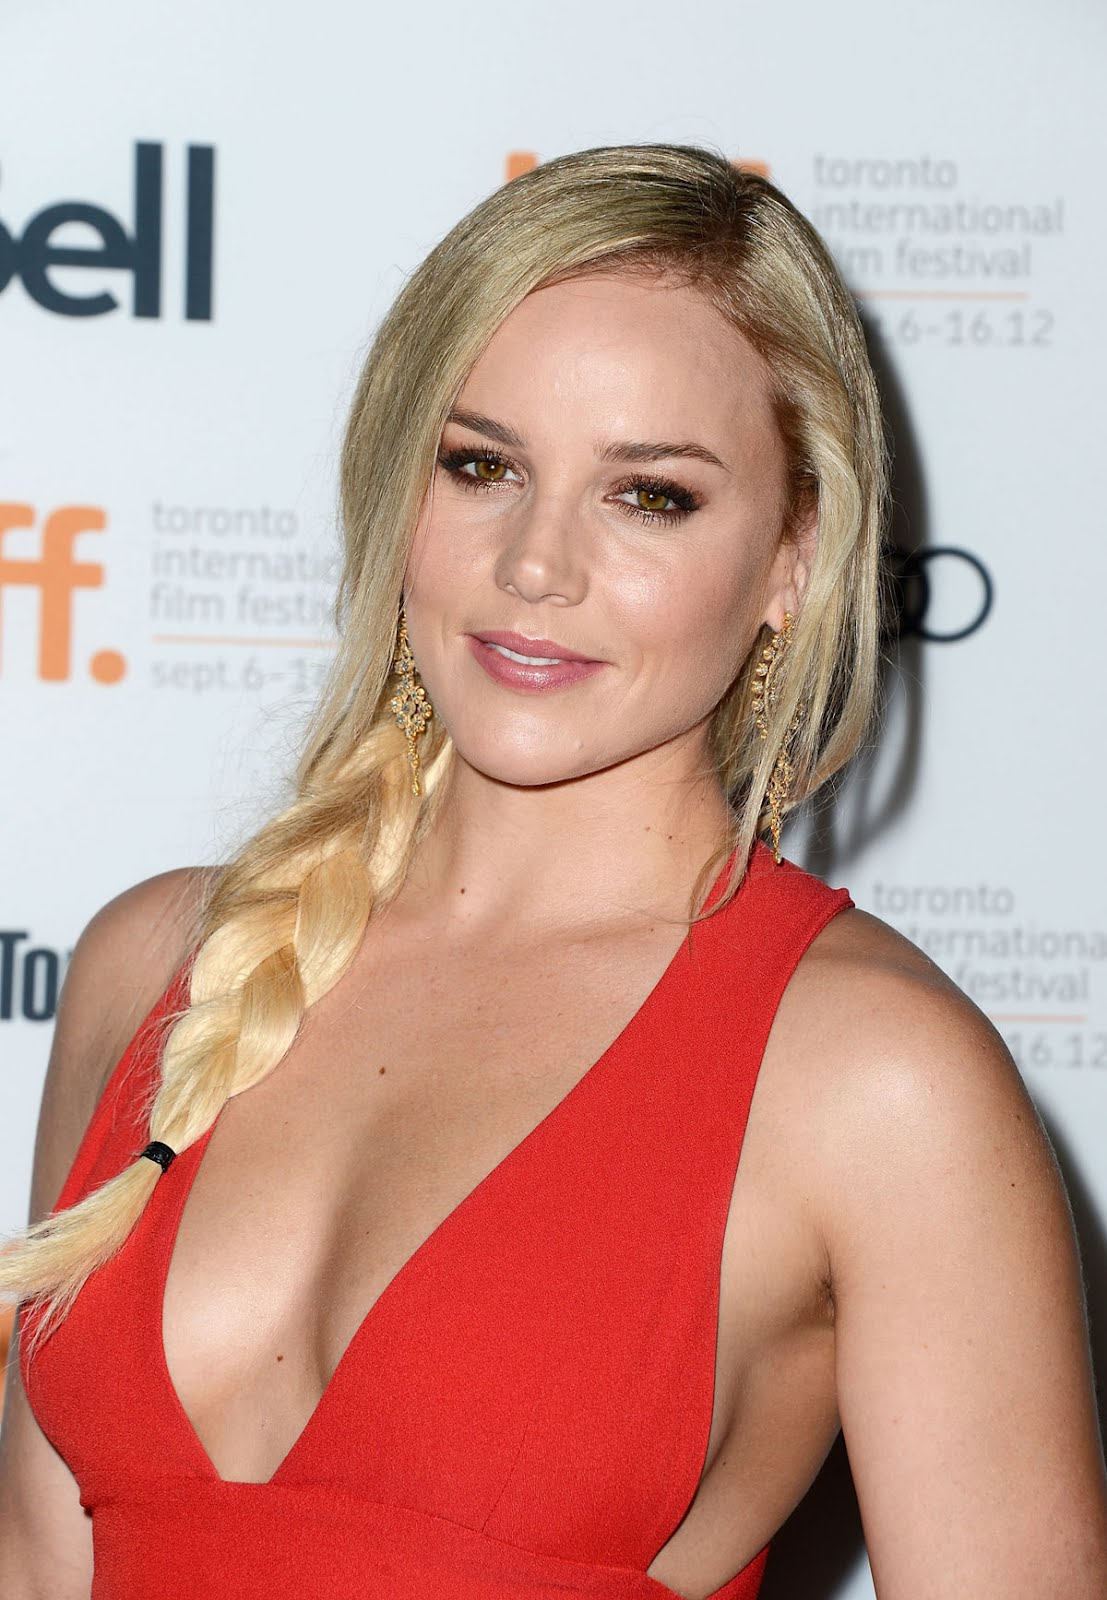 http://2.bp.blogspot.com/-Rv83c7Yq6ck/UFnrWfiVVII/AAAAAAAABDA/UZRmCCES9AM/s1600/ABBIE-CORNISH-at-Seven-Psychopaths-Premiere-at-Toronto-Film-Fest-1.jpg